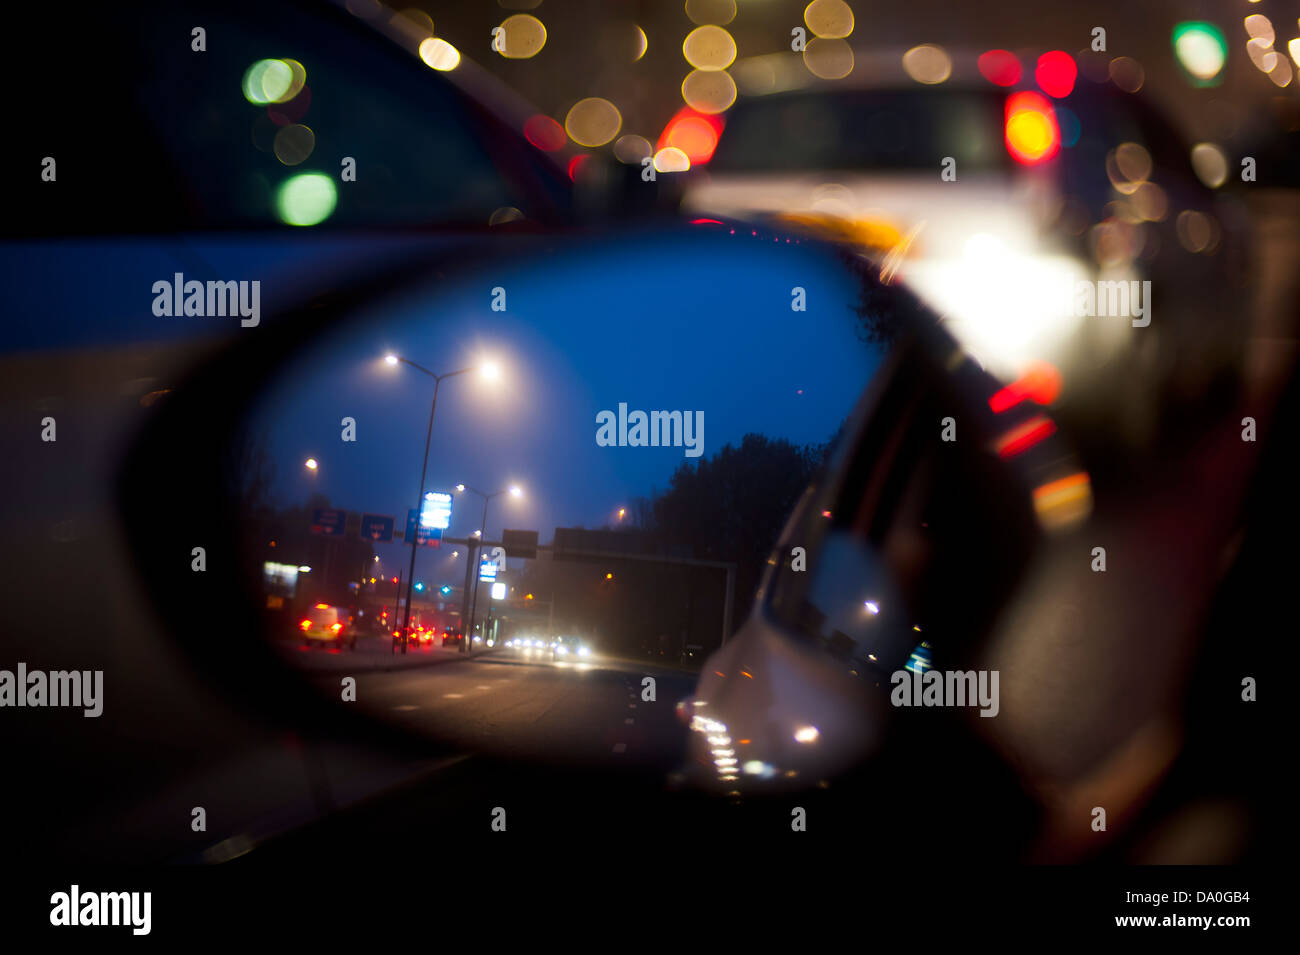 The Car Mirror With City Lights In The Rain Stock Photo 57790520